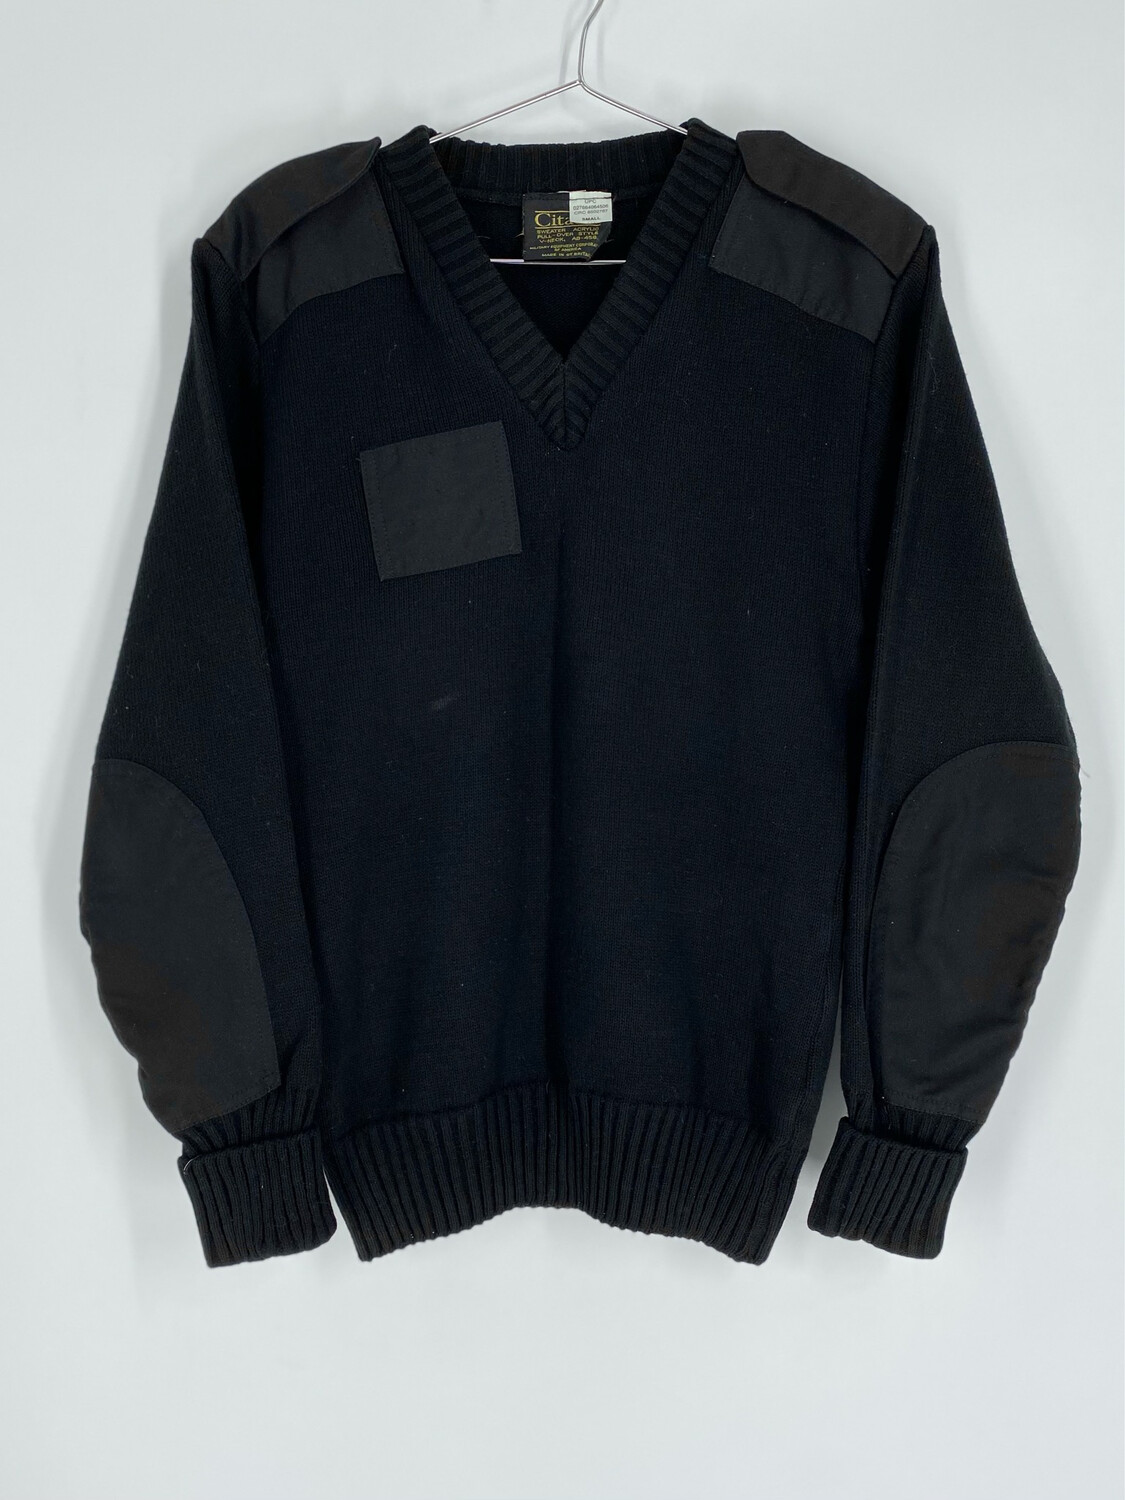 Citadel Black Patch Sweater Size S